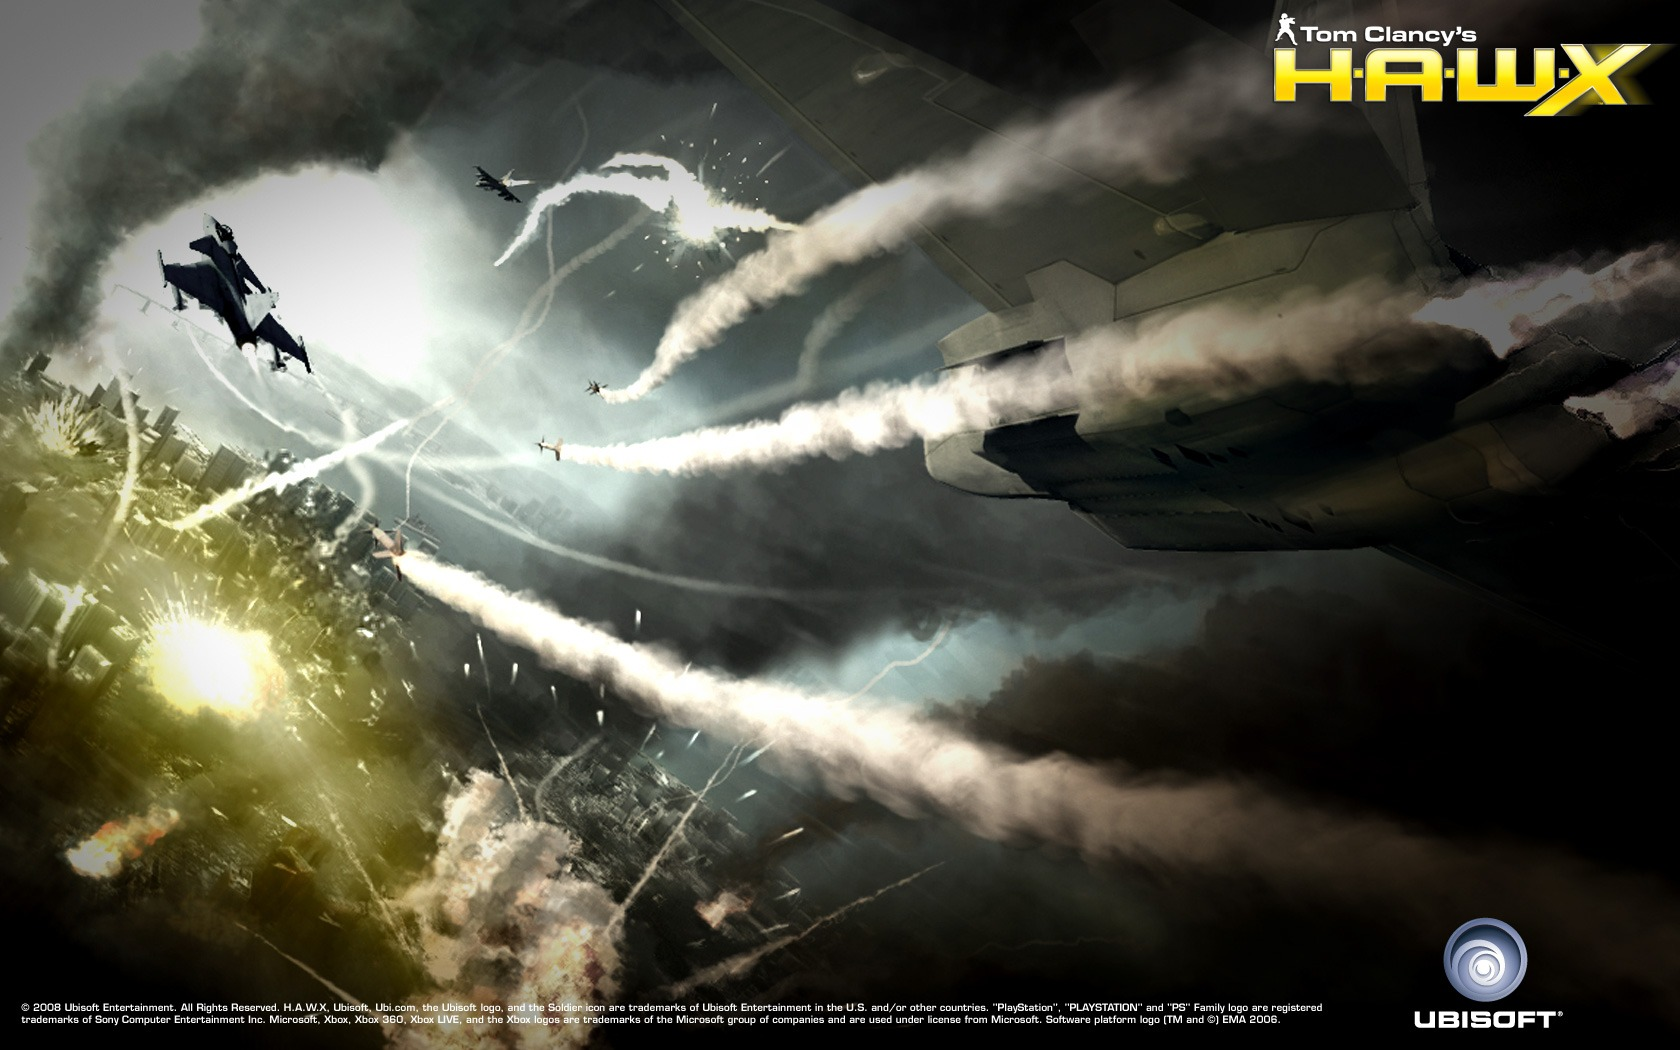 1680x1050 - Tom Clancy's H.A.W.X HD Wallpapers 29